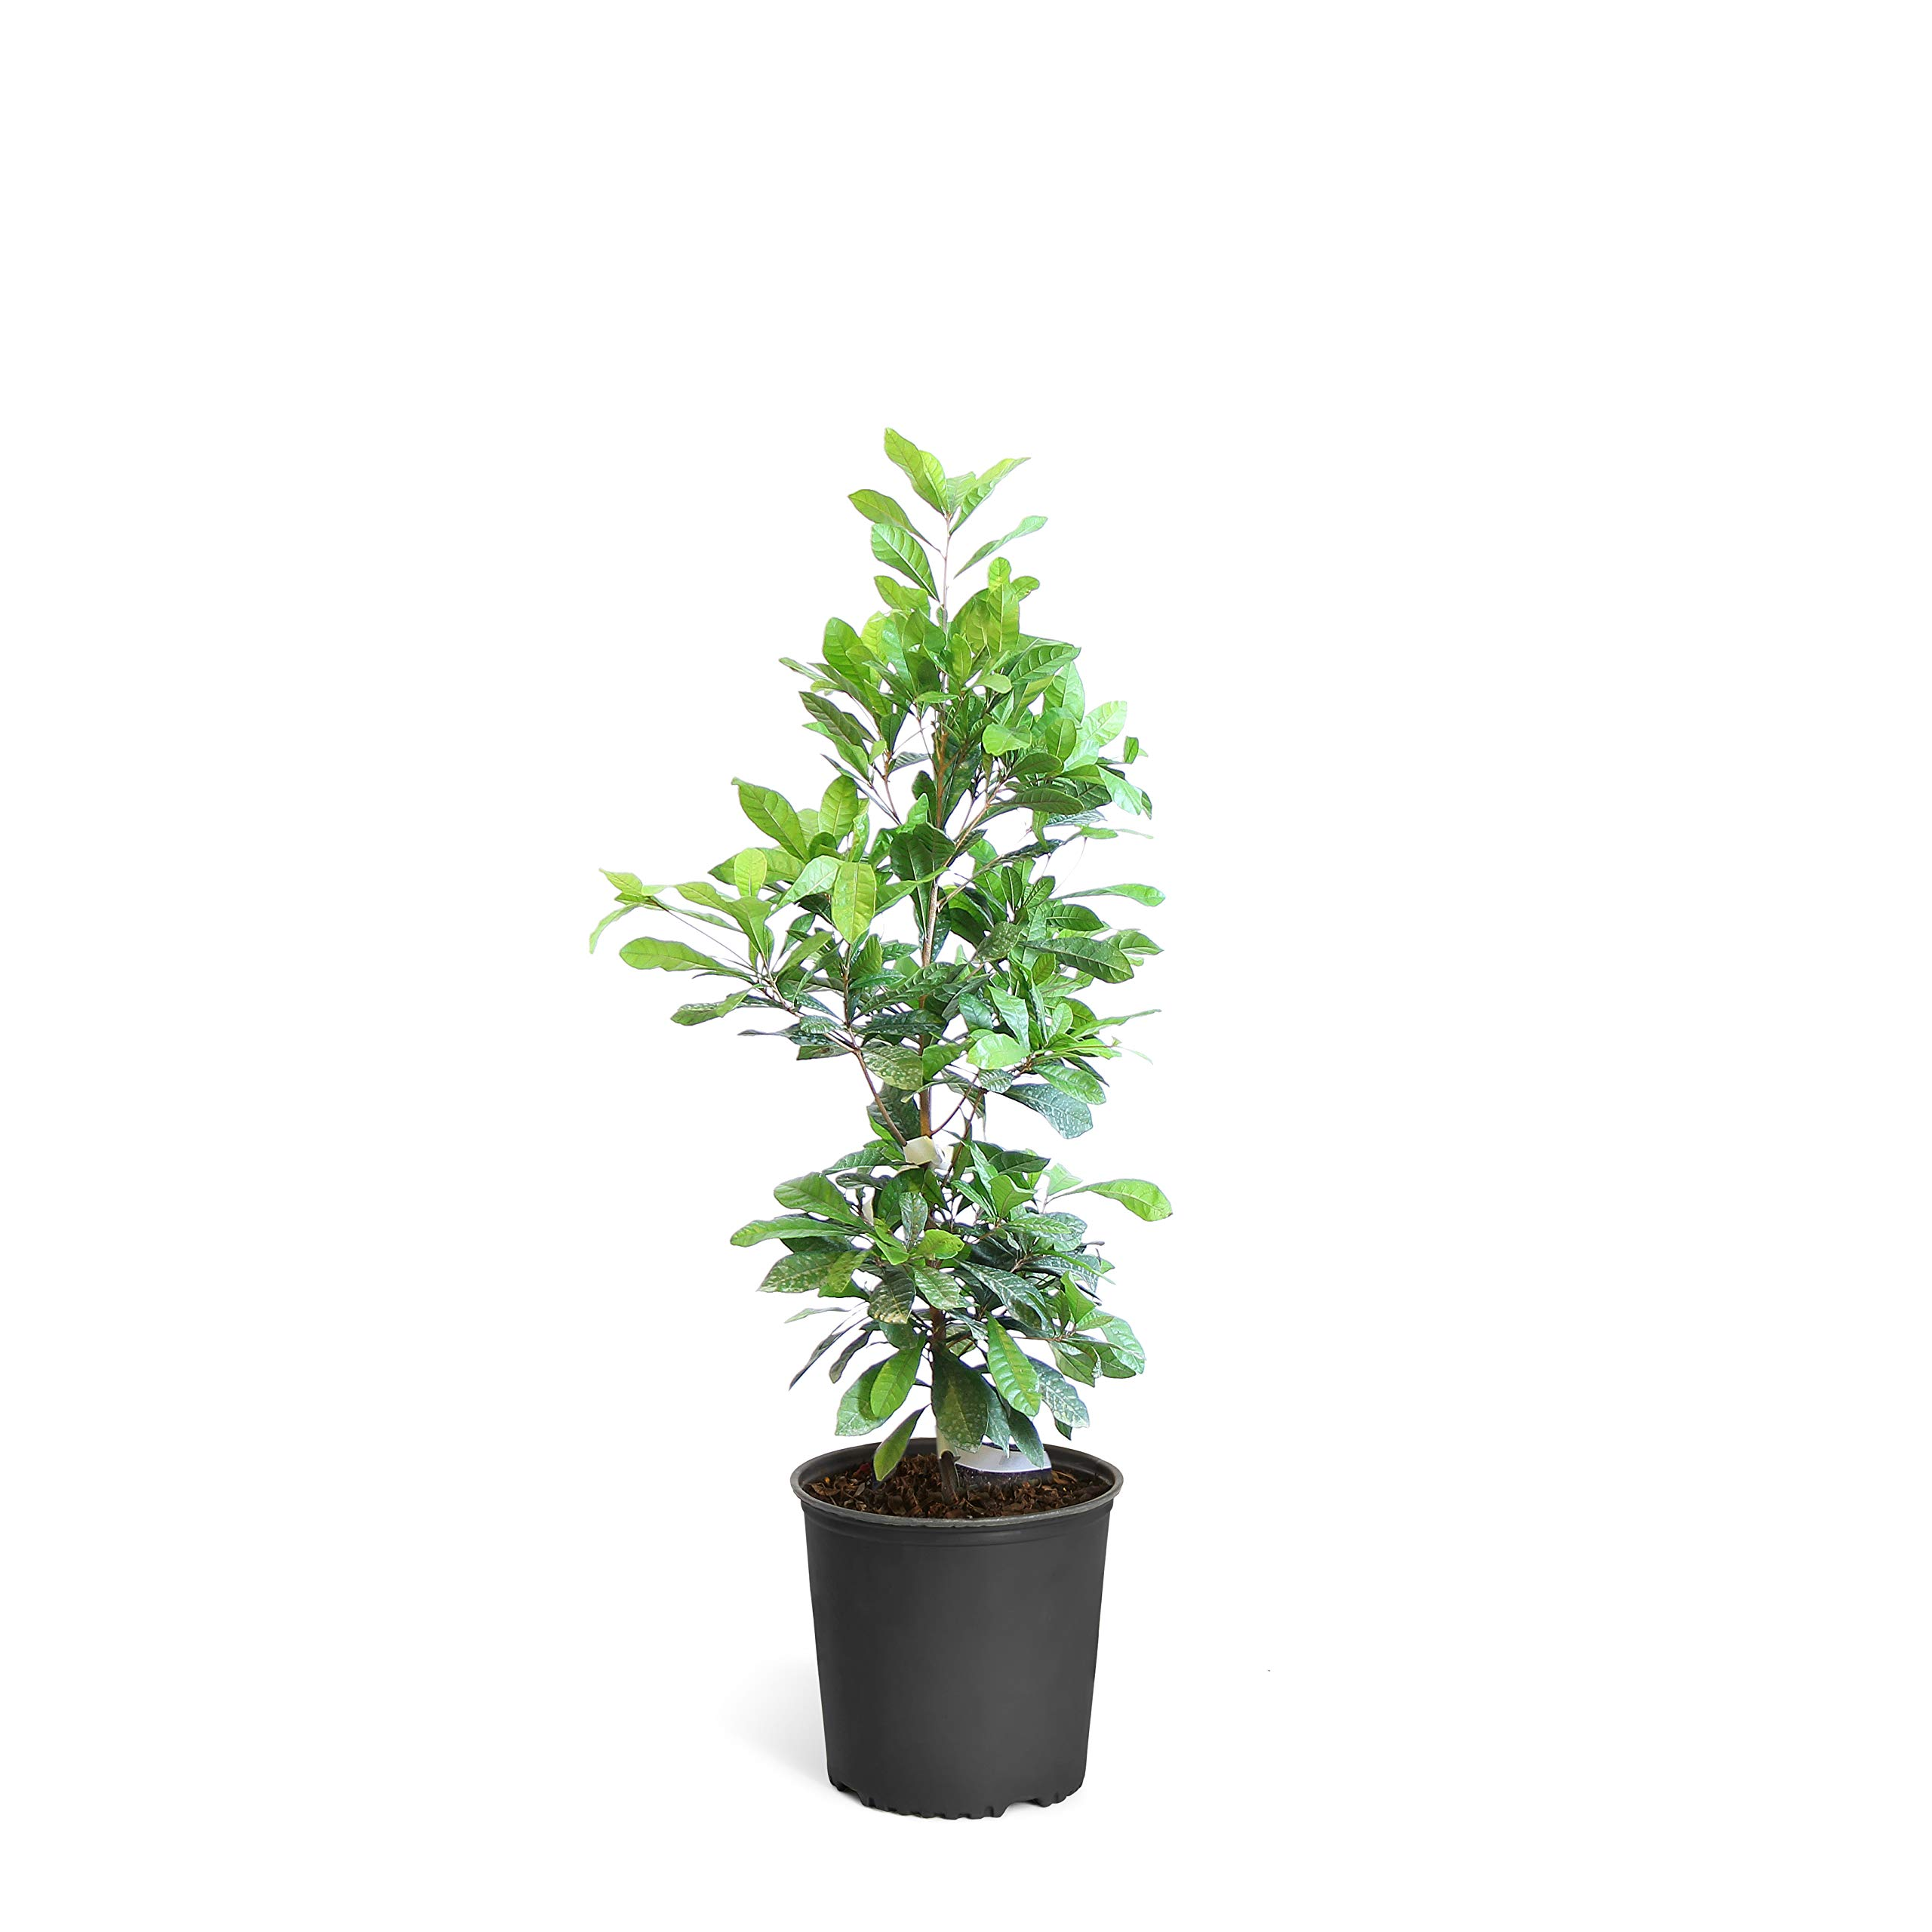 Miracle Berry - Miracle Fruit Plant - 3 Gallon Plant | Cannot Ship to AZ by Brighter Blooms (Image #1)